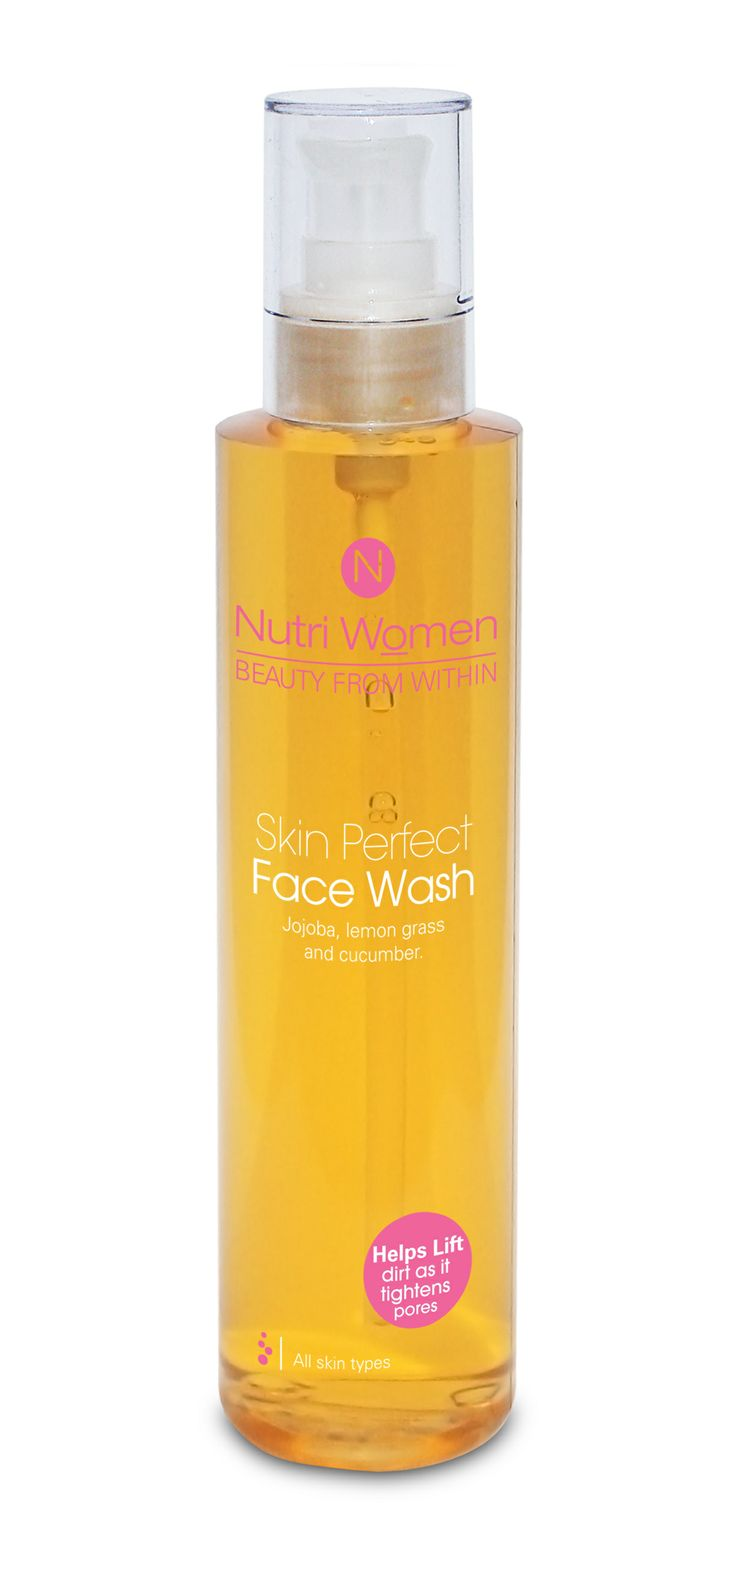 Skin perfect face wash. with lemongrass and jojoba, will lift dirt and purify skin